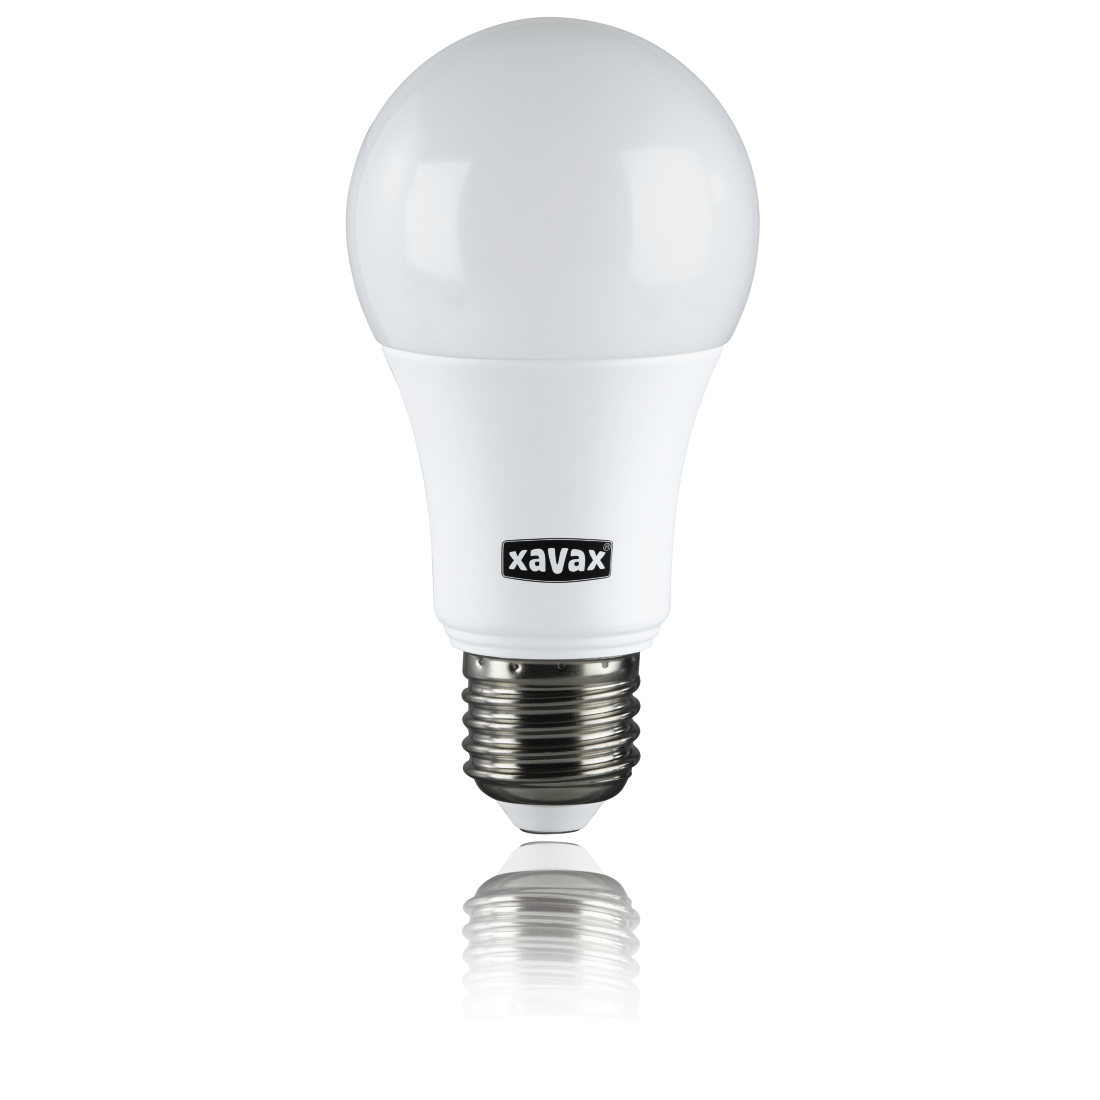 abx2 High-Res Image 2 - Xavax, Ampoule LED High Line, 9,2W, forme classique, E27, blanc chaud,RA90